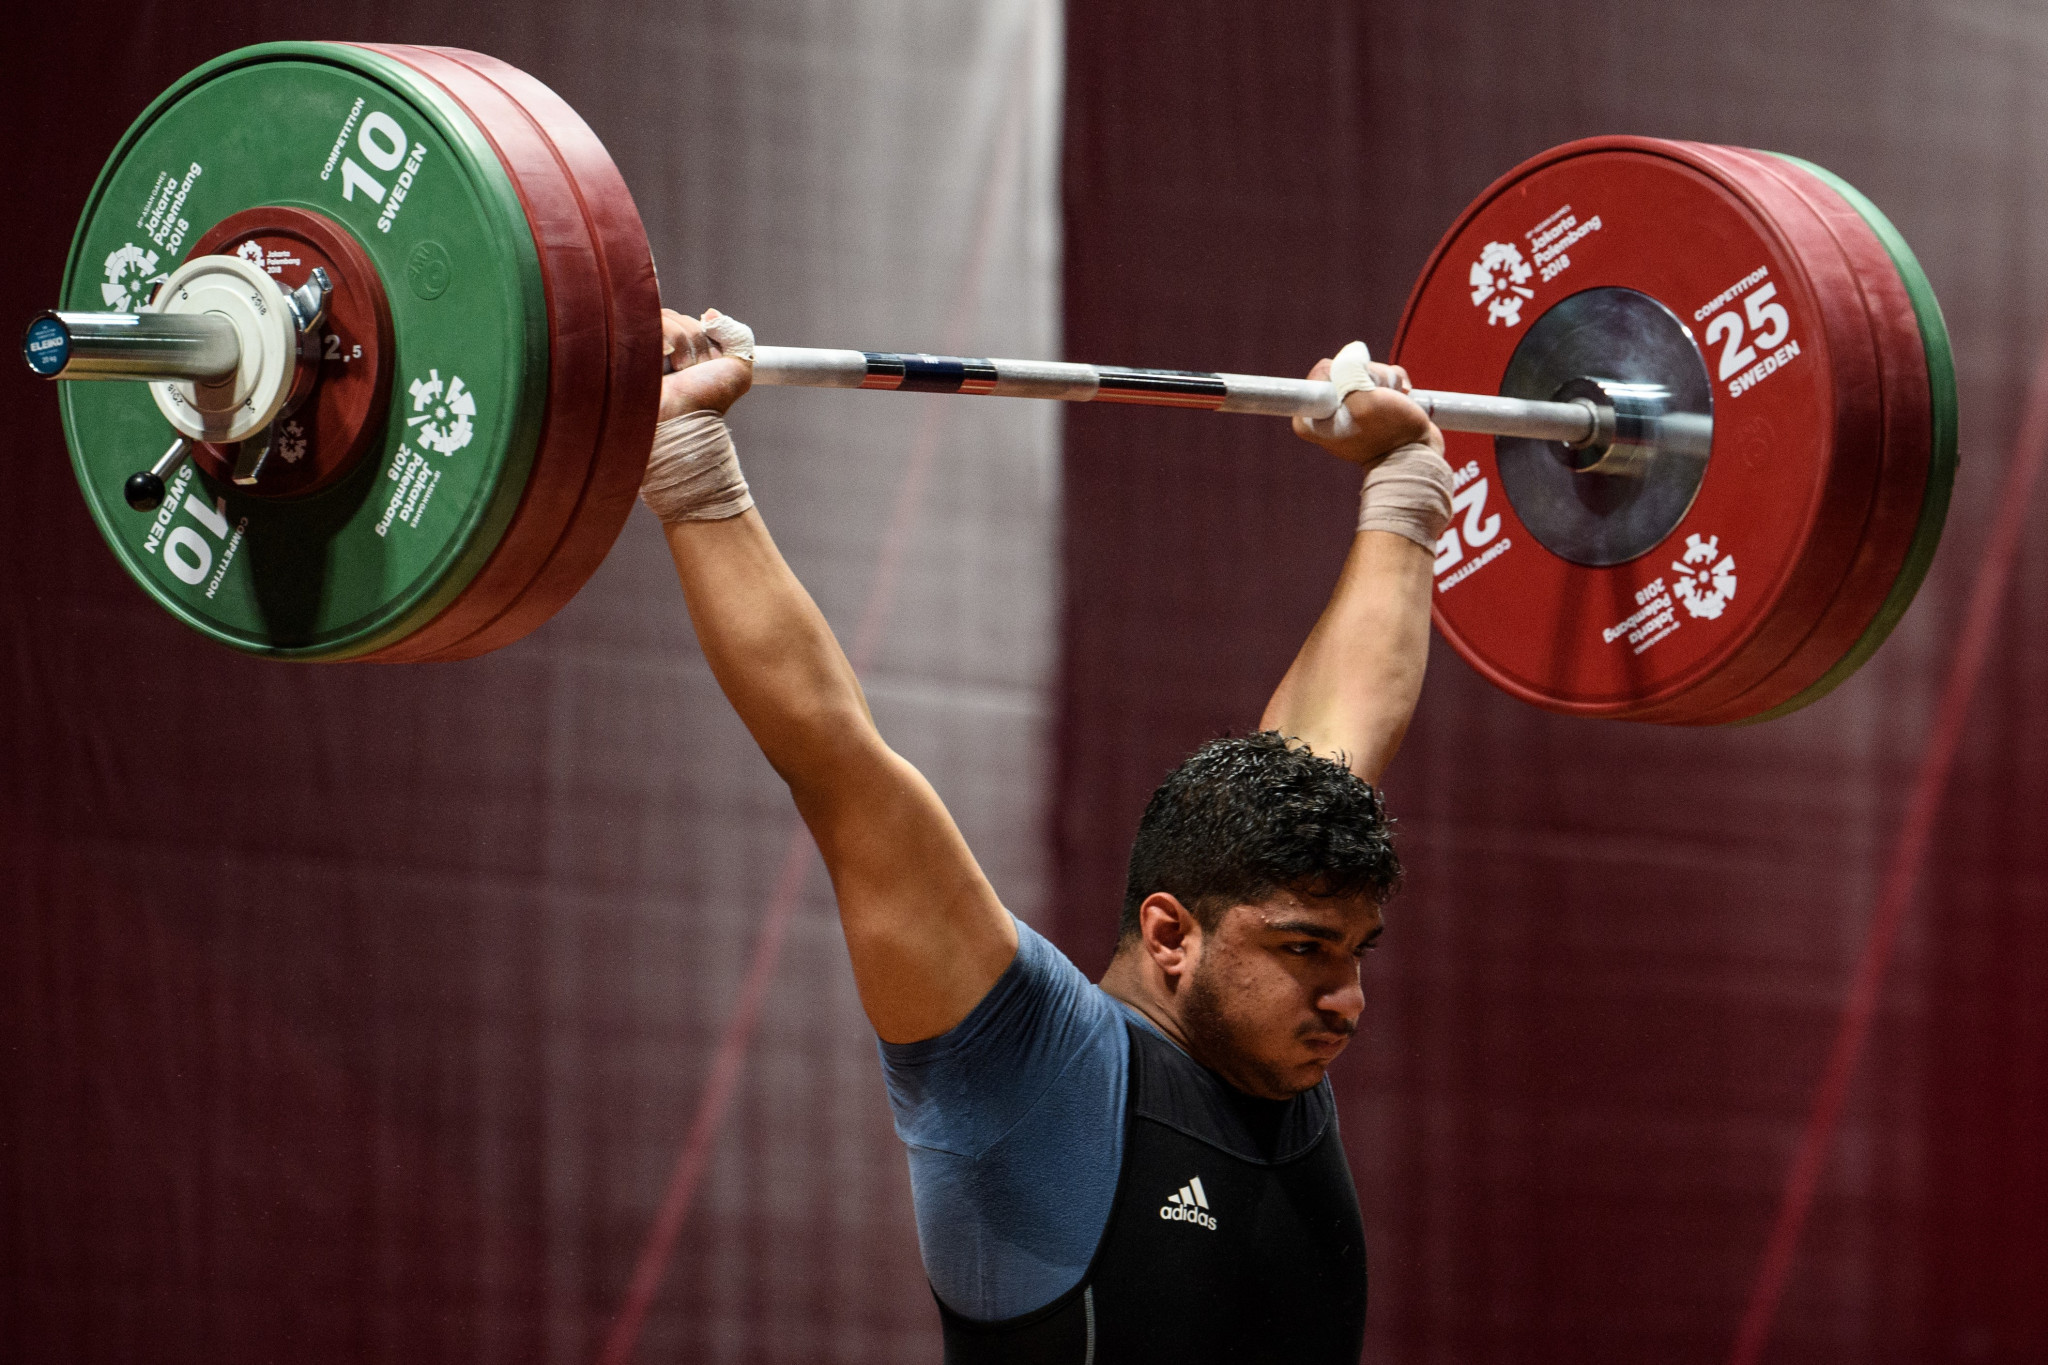 Saudi Arabia's Ali Yousef Alothman is one of three bronze medallists from Buenos Aires 2018 competing in Las Vegas ©Getty Images